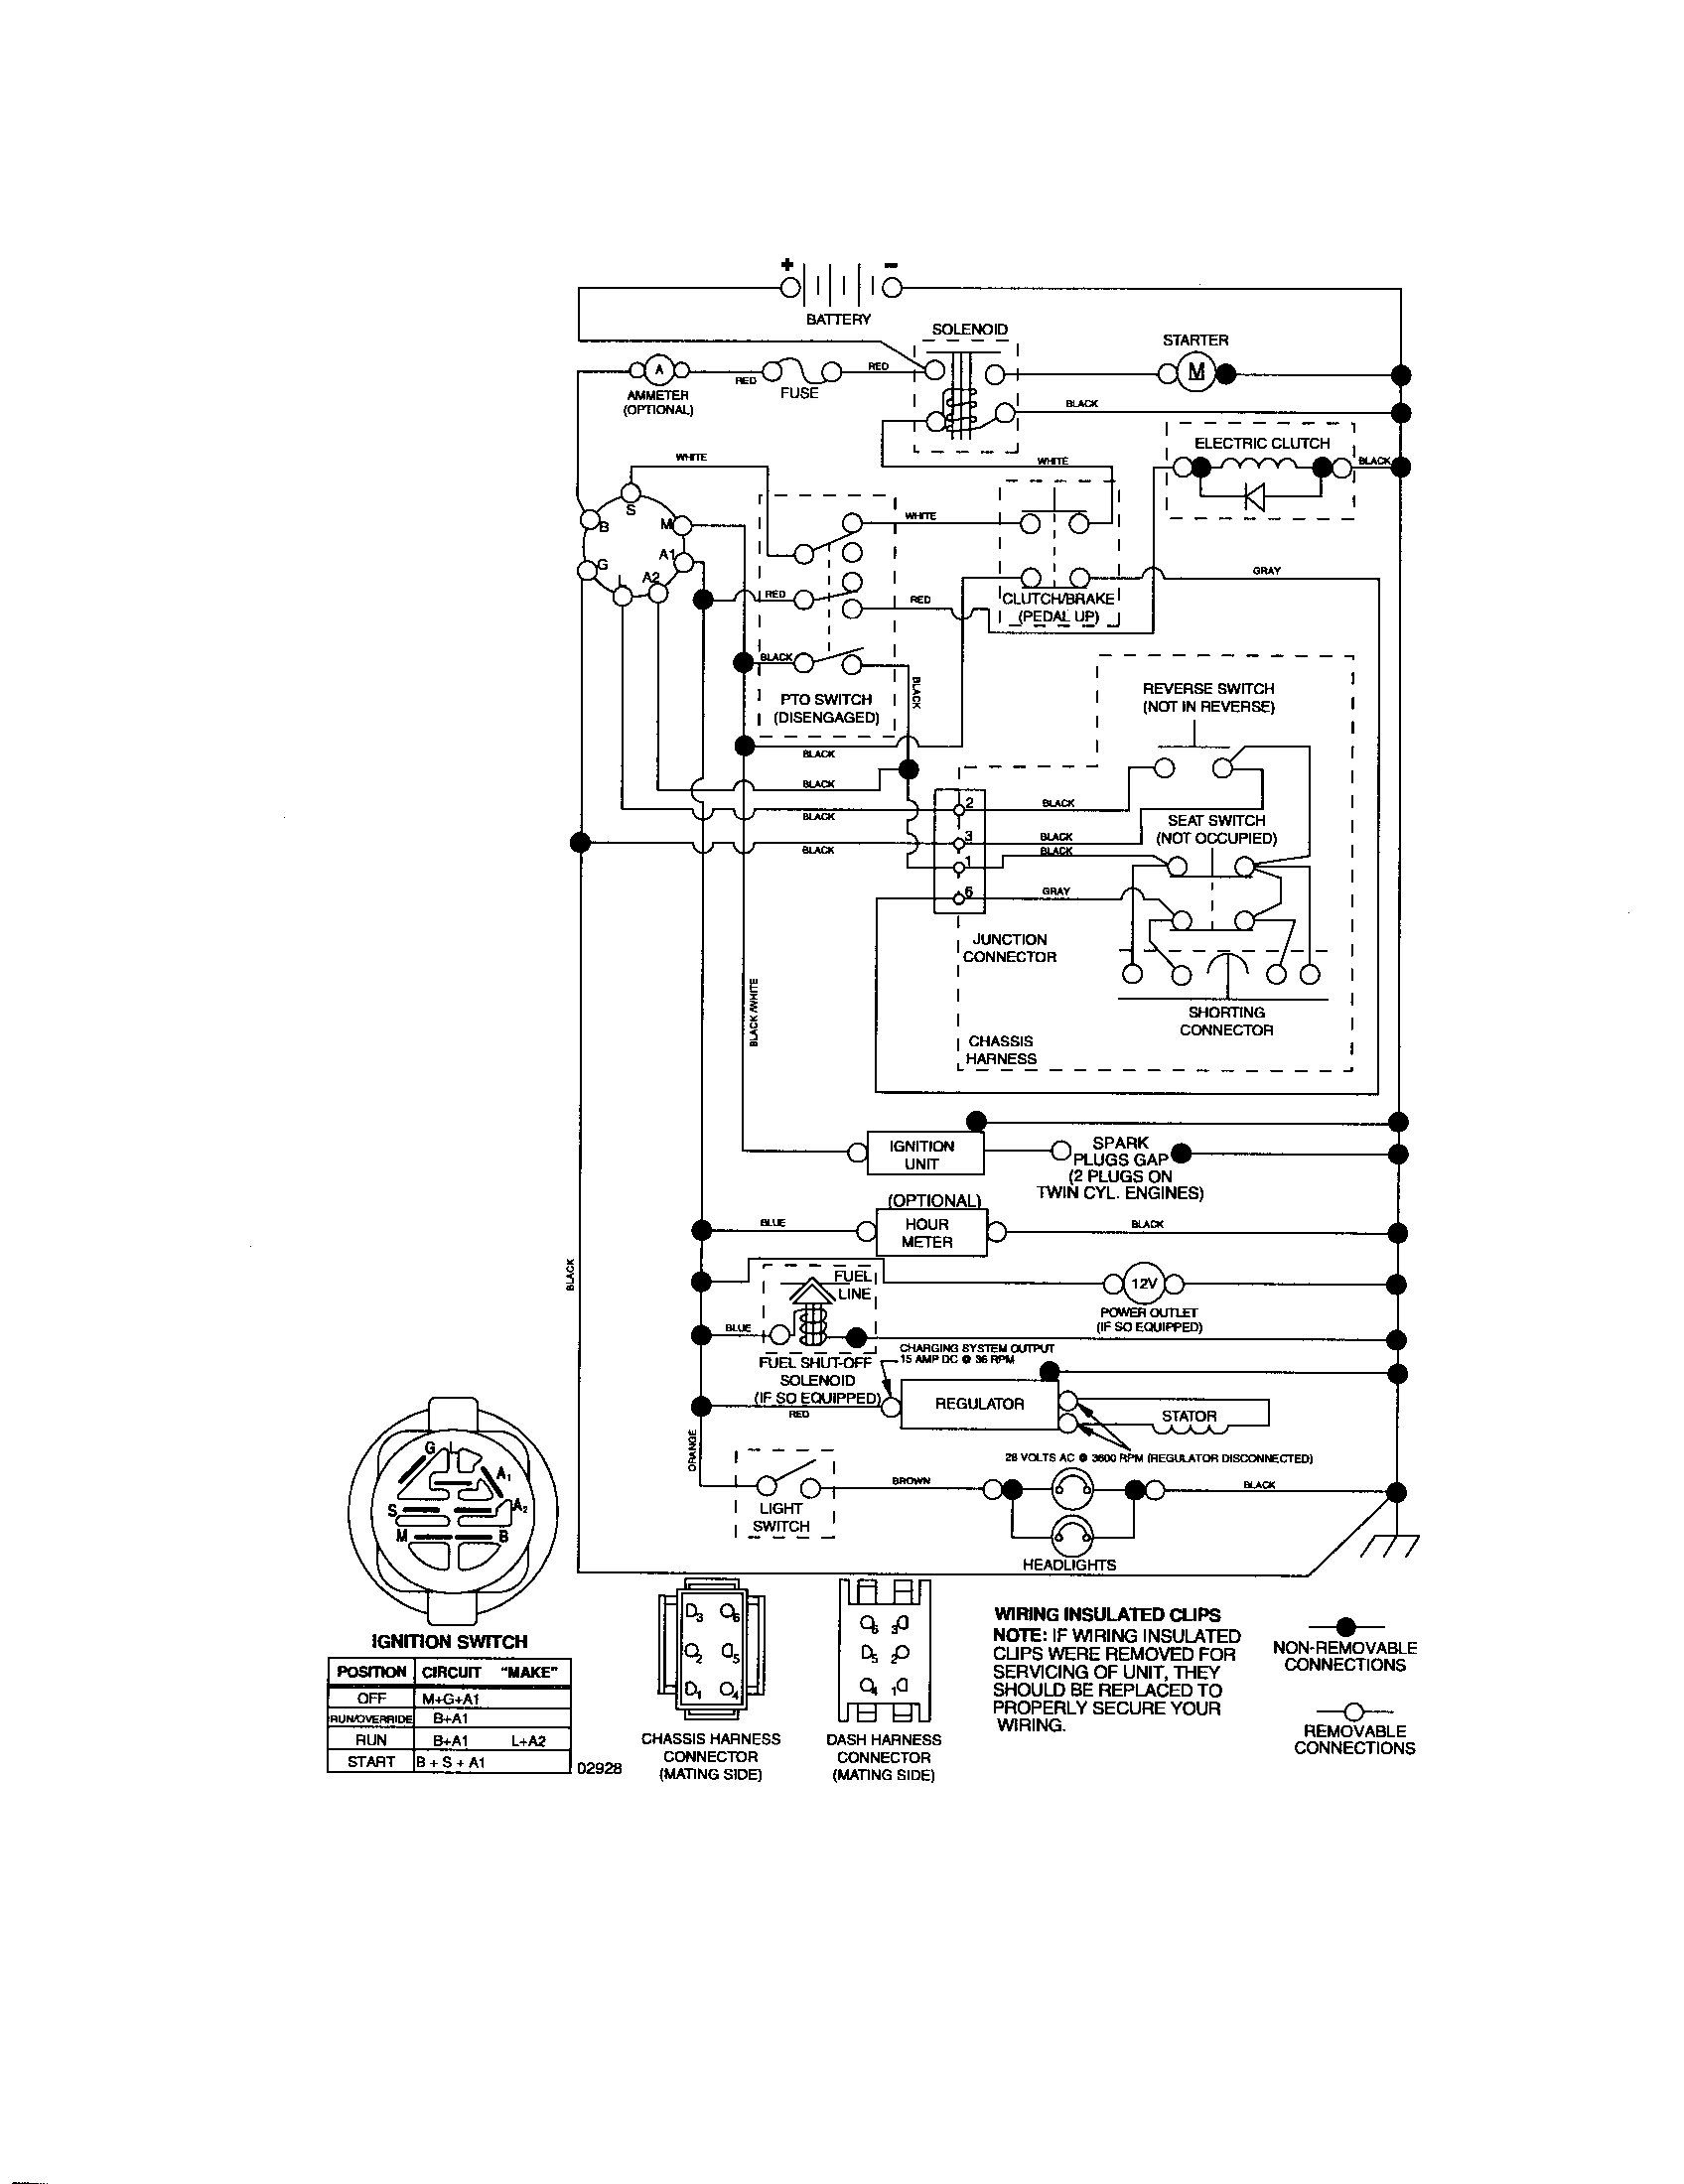 Craftsman Lawn Tractor With Kohler 15 5 Engine Wiring Diagram